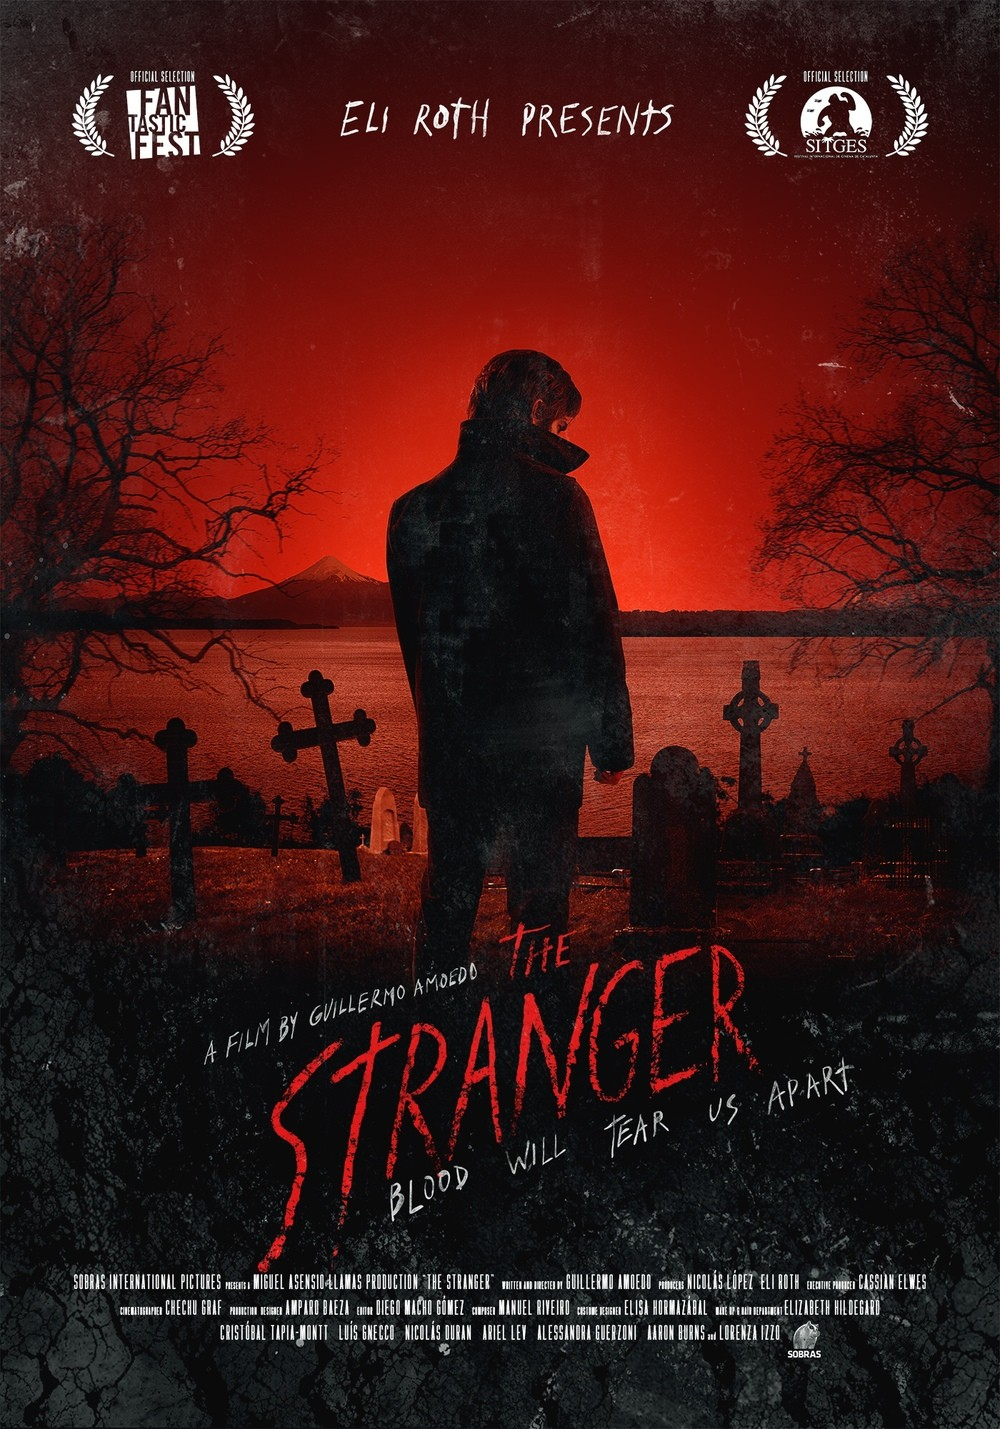 The Stranger 2014 movie poster